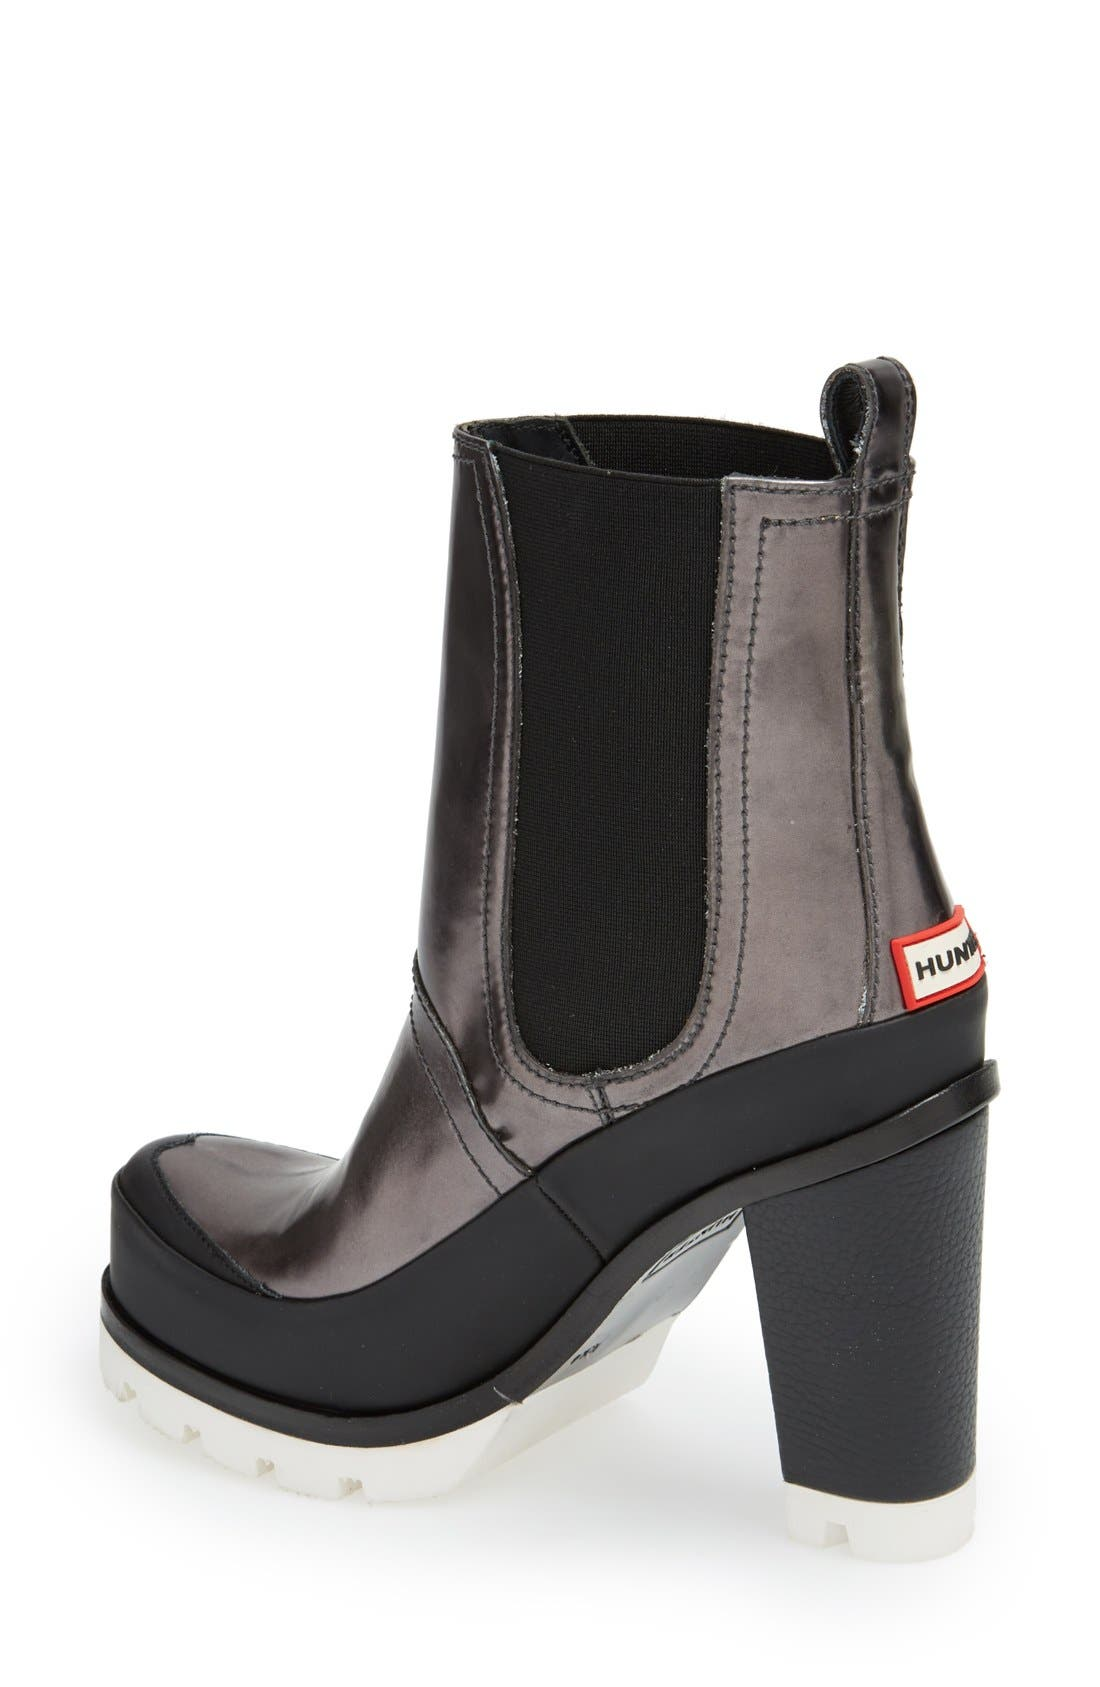 Alternate Image 2  - Hunter 'Original - High Heel' Chelsea Rain Boot (Women)